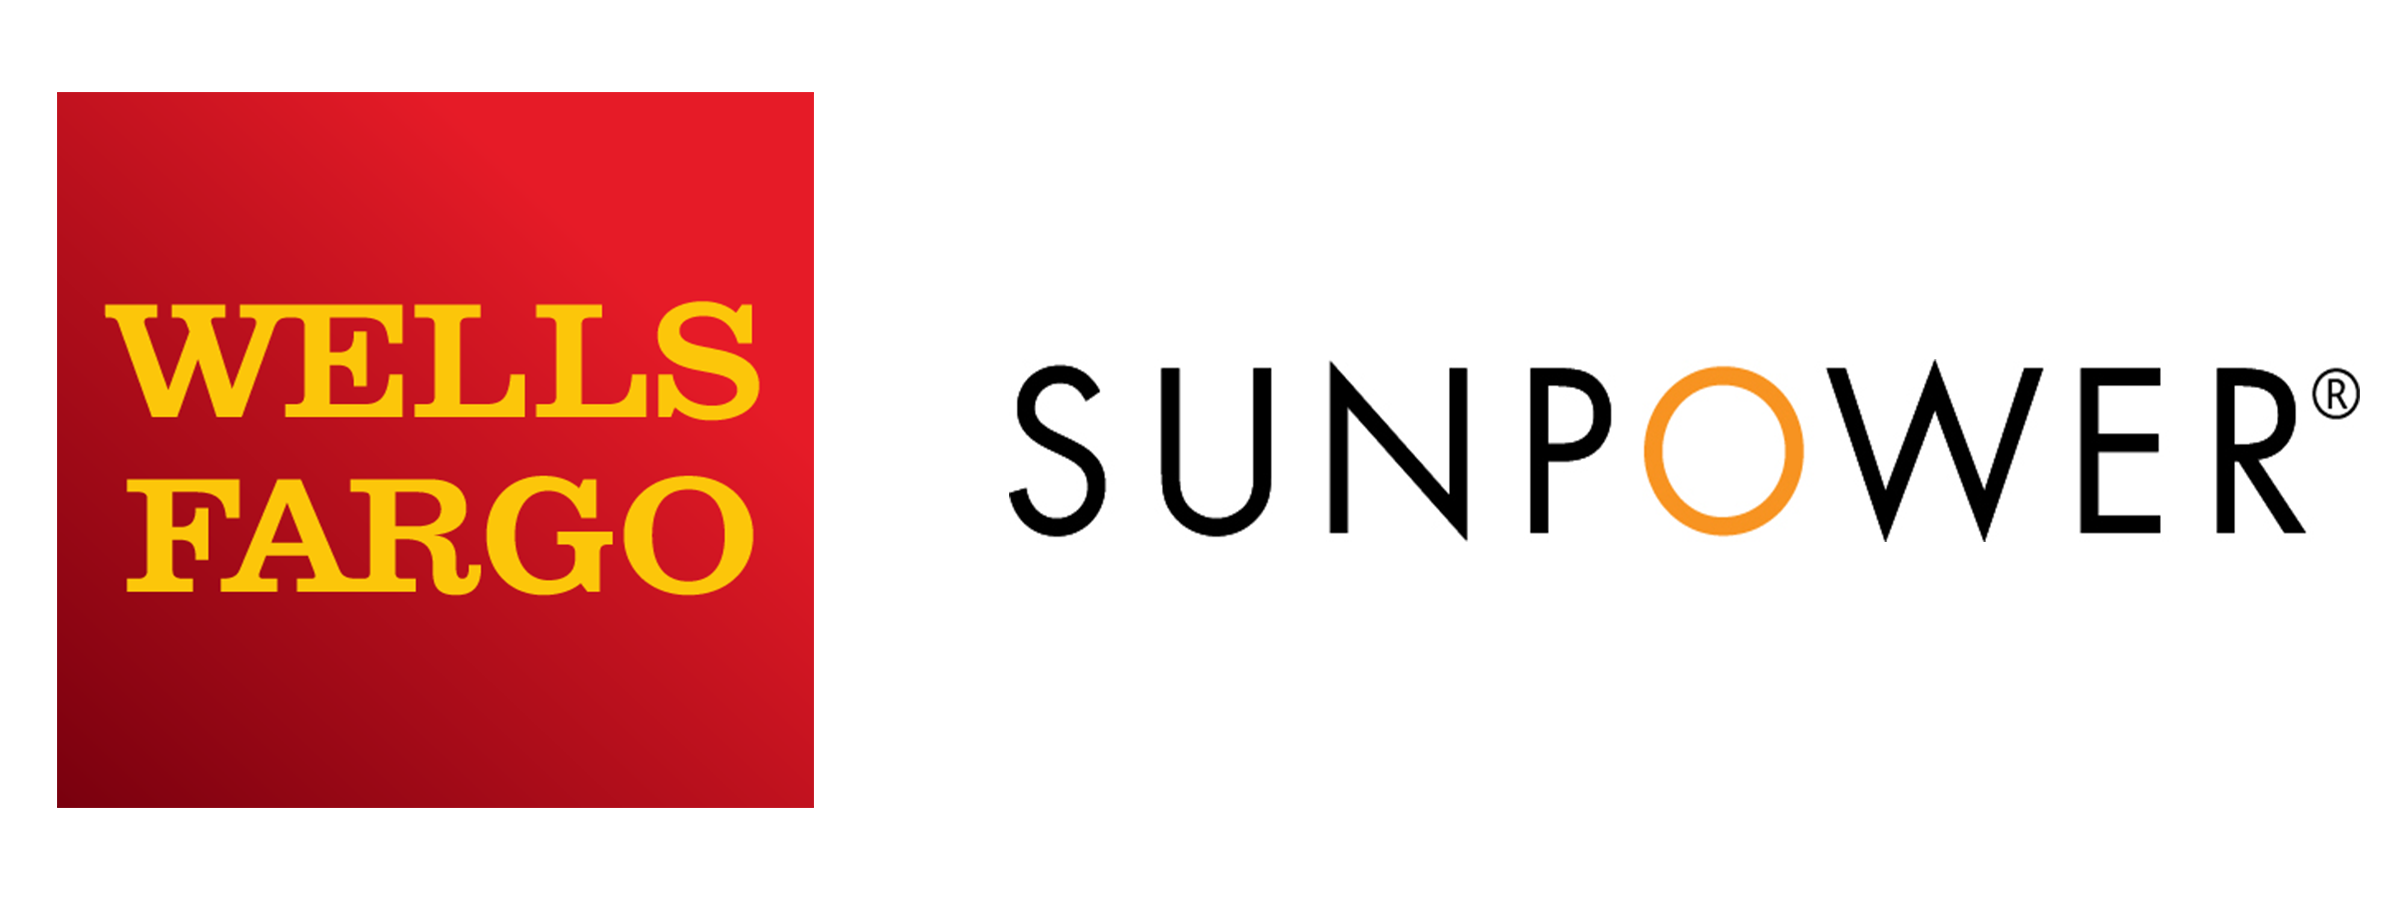 Wells Fargo and Sunpower Logo